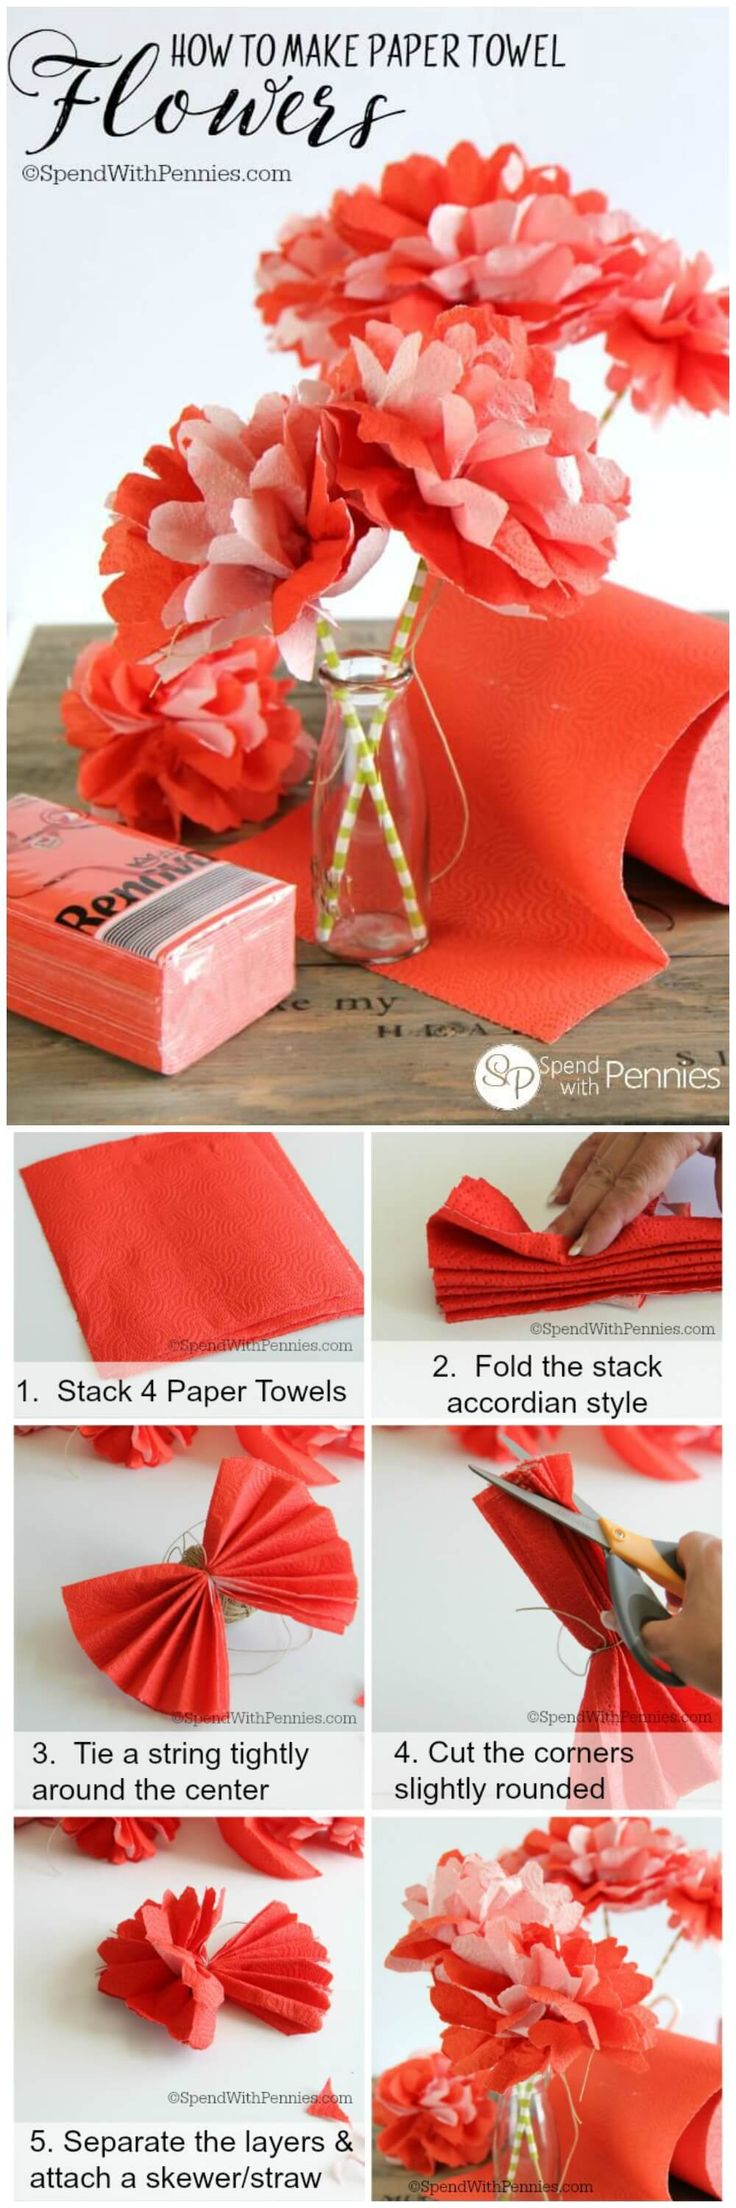 How to make beautiful flowers out of PAPER TOWELS!!  These are inexpensive, quick and easy to make and beautiful as a simple centrepiece!